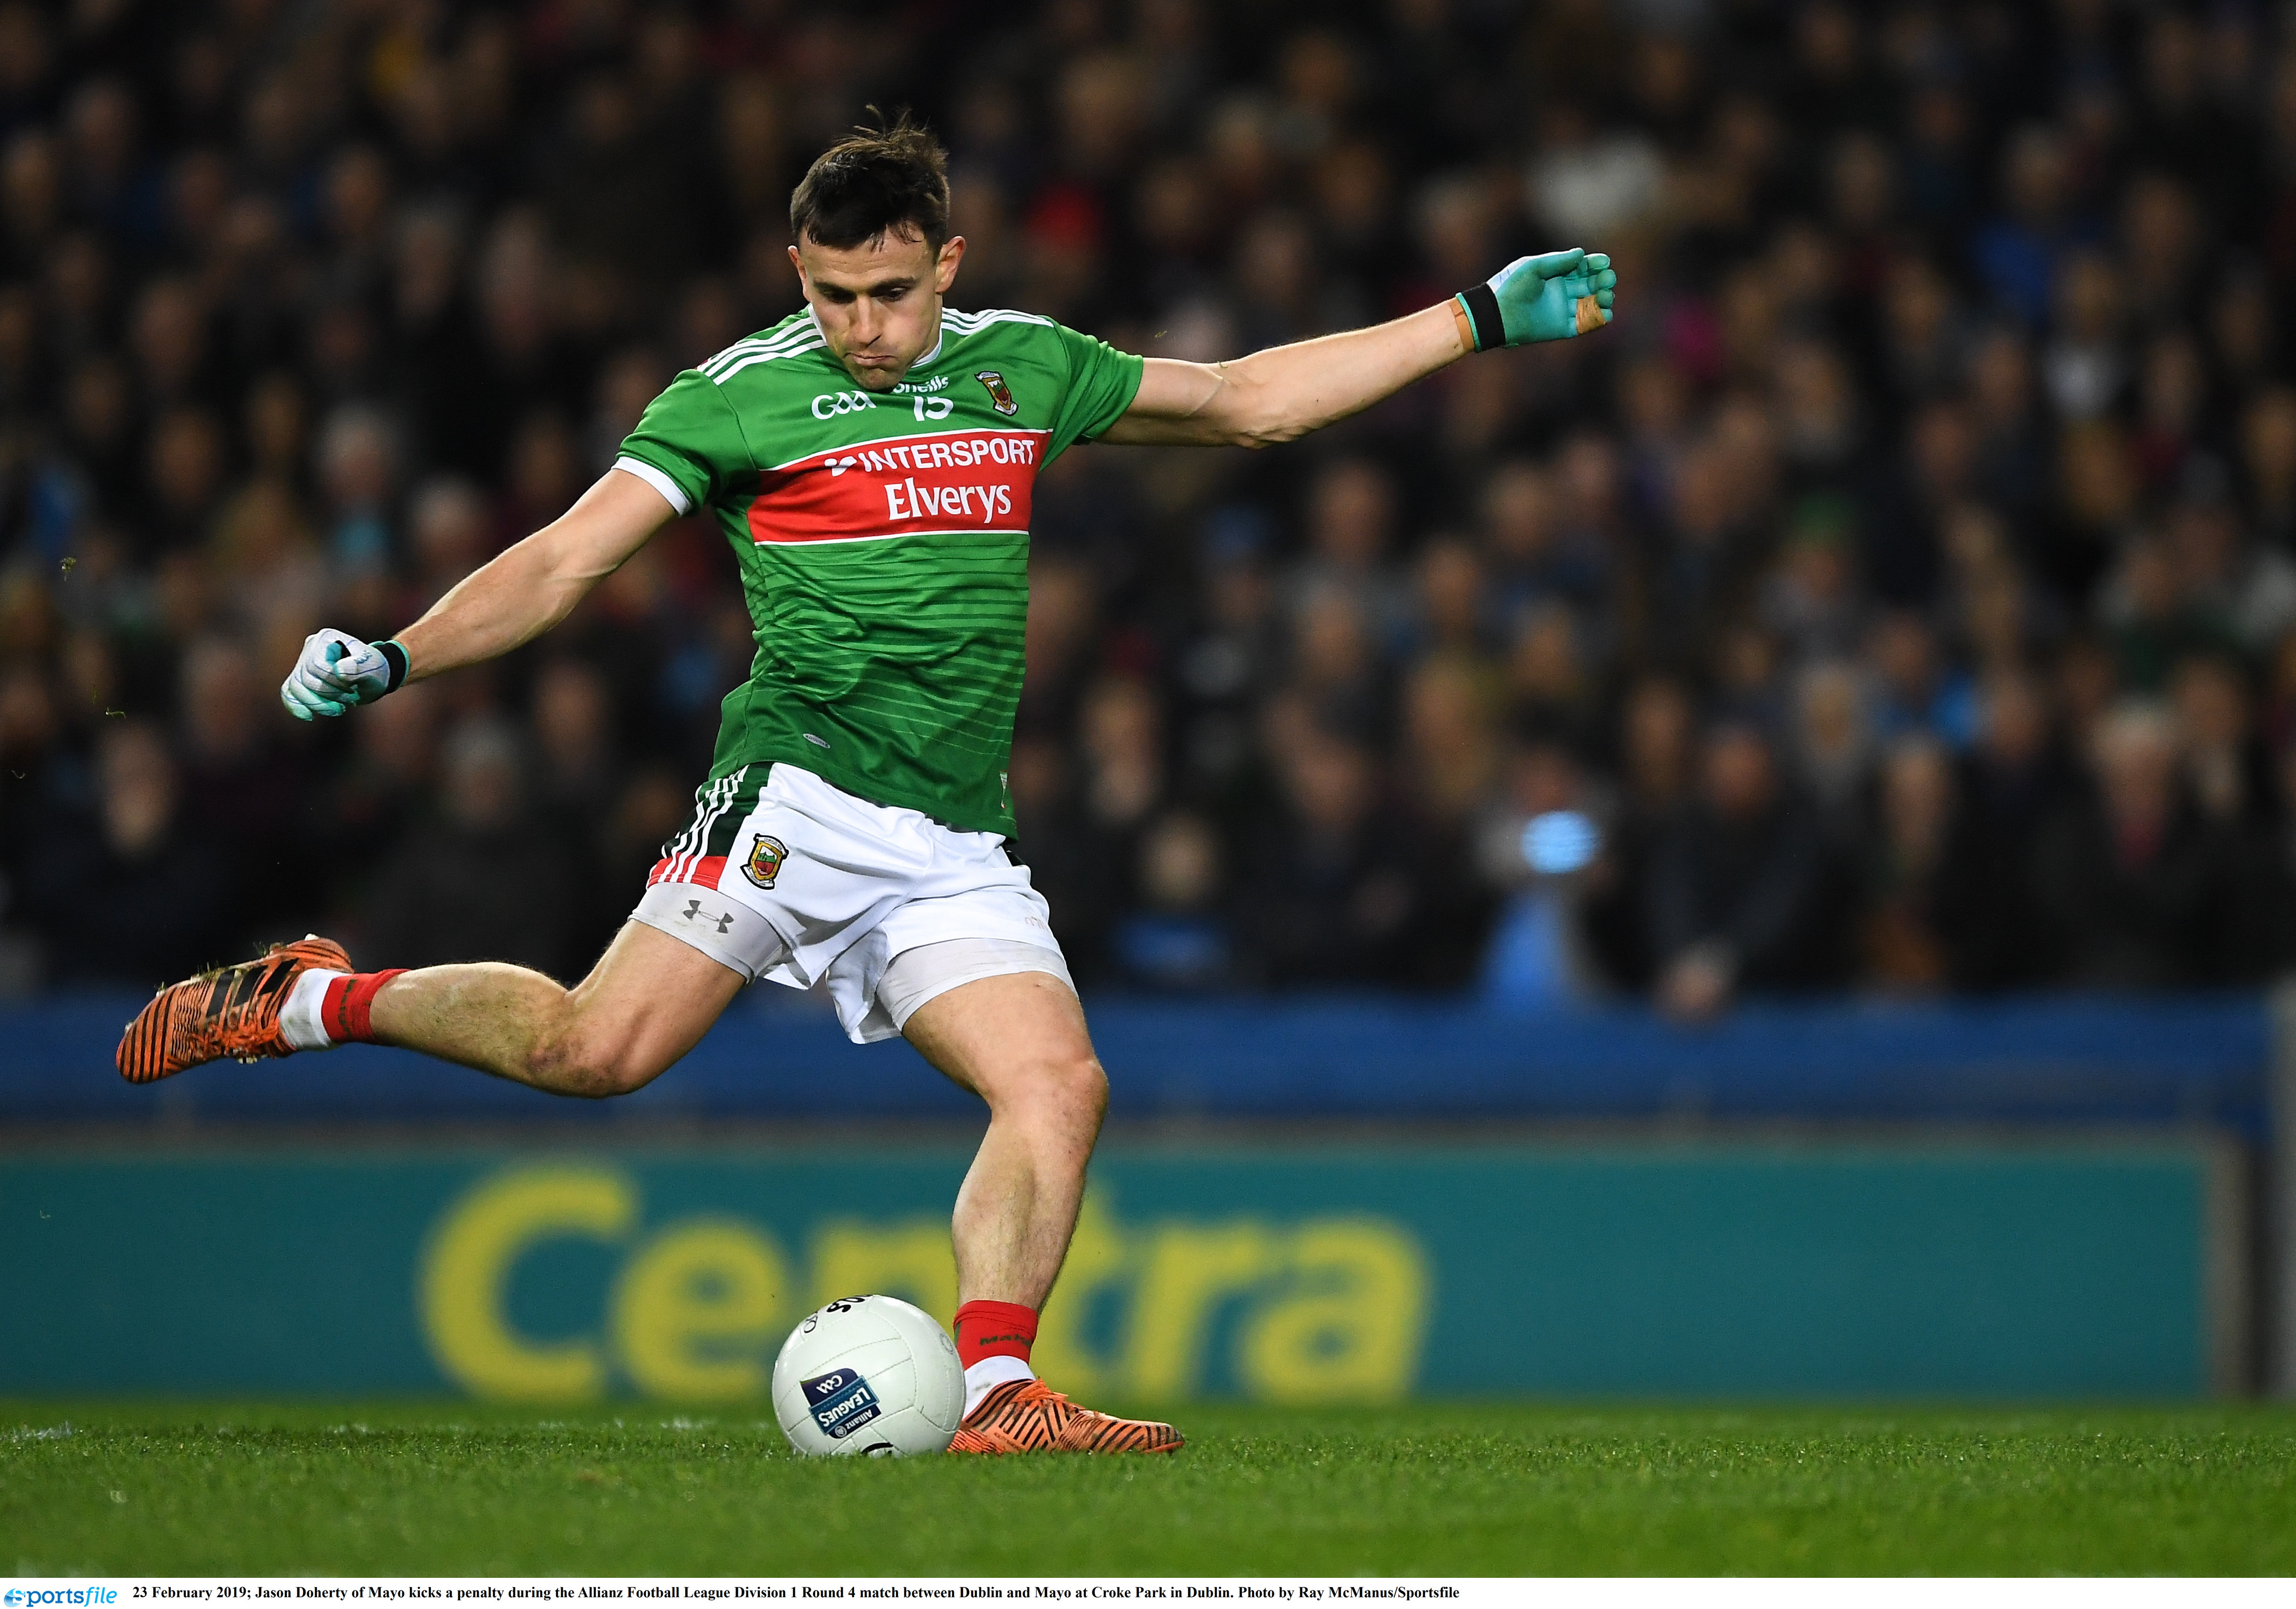 Allianz Hurling and Football League Round-Ups